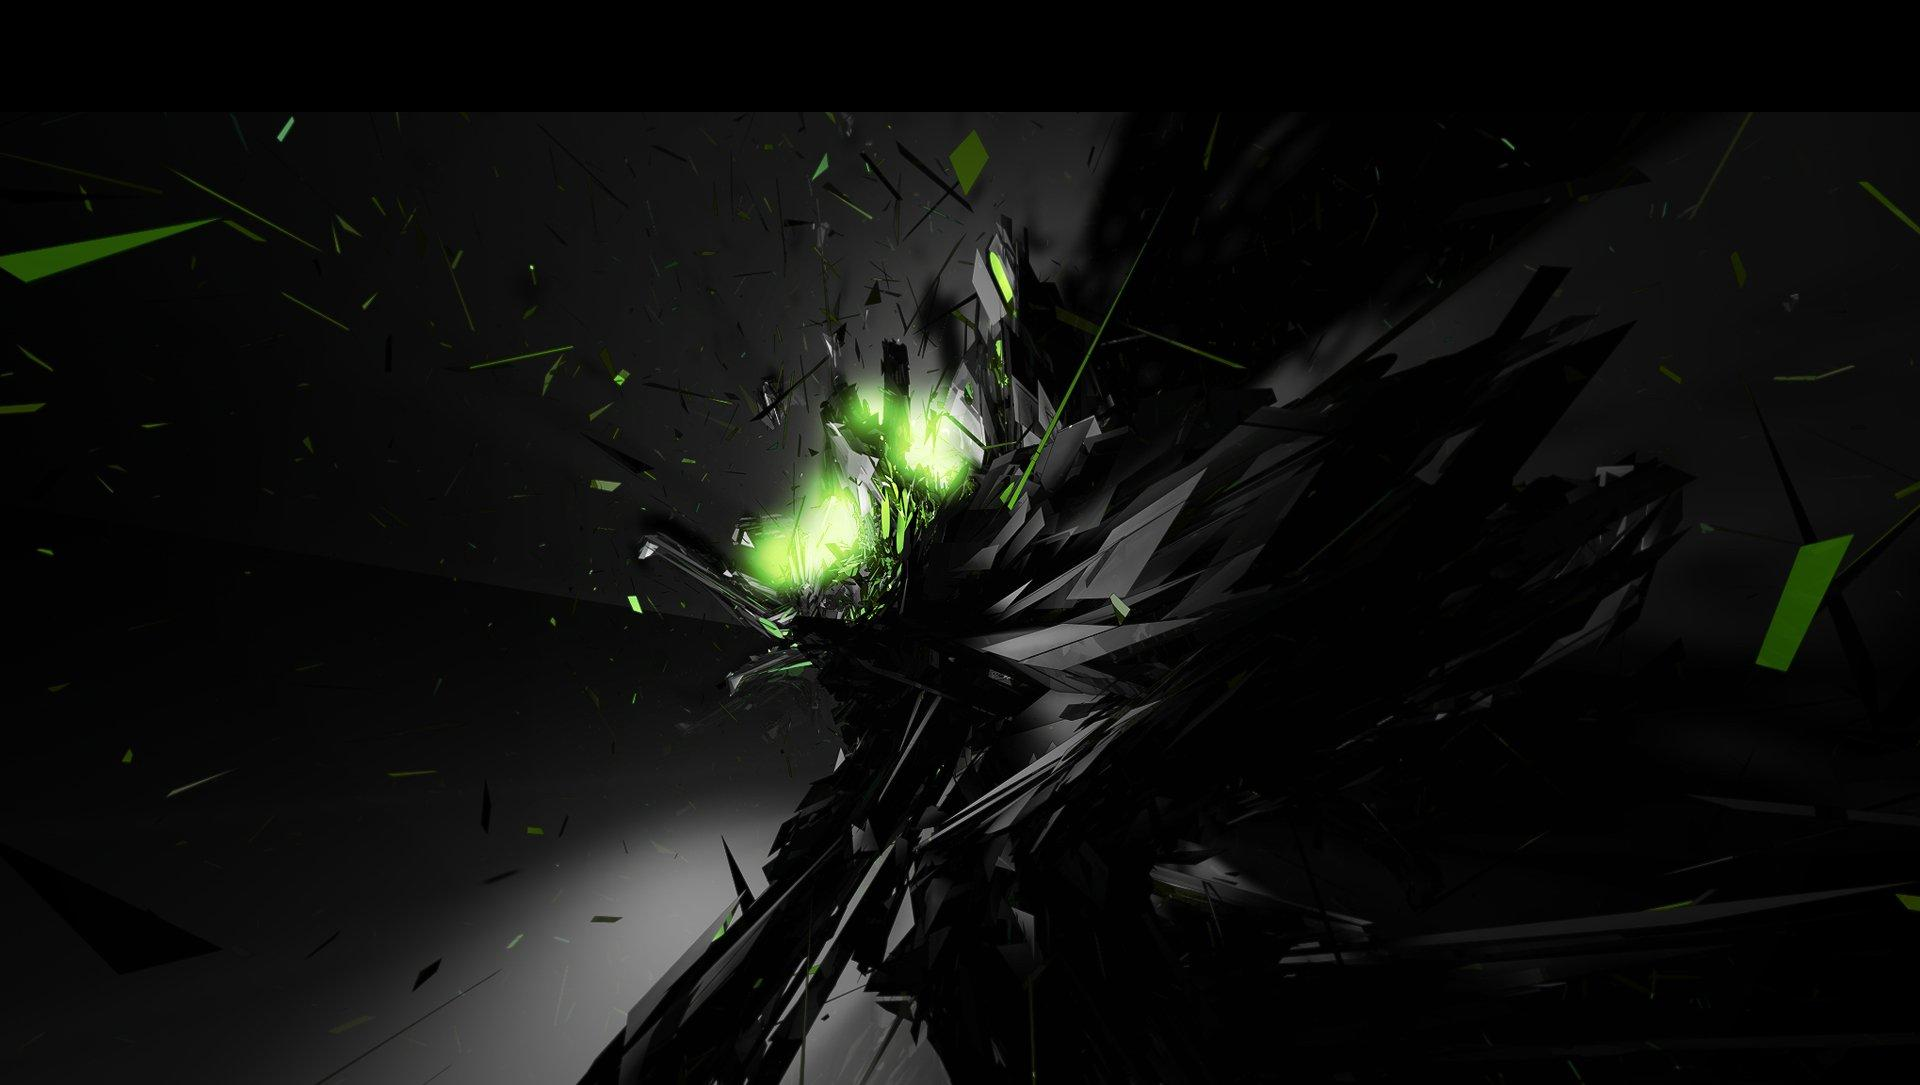 Dark Green Abstract Design HD Wallpaper For Your PC ...Green Abstract Wallpaper Hd